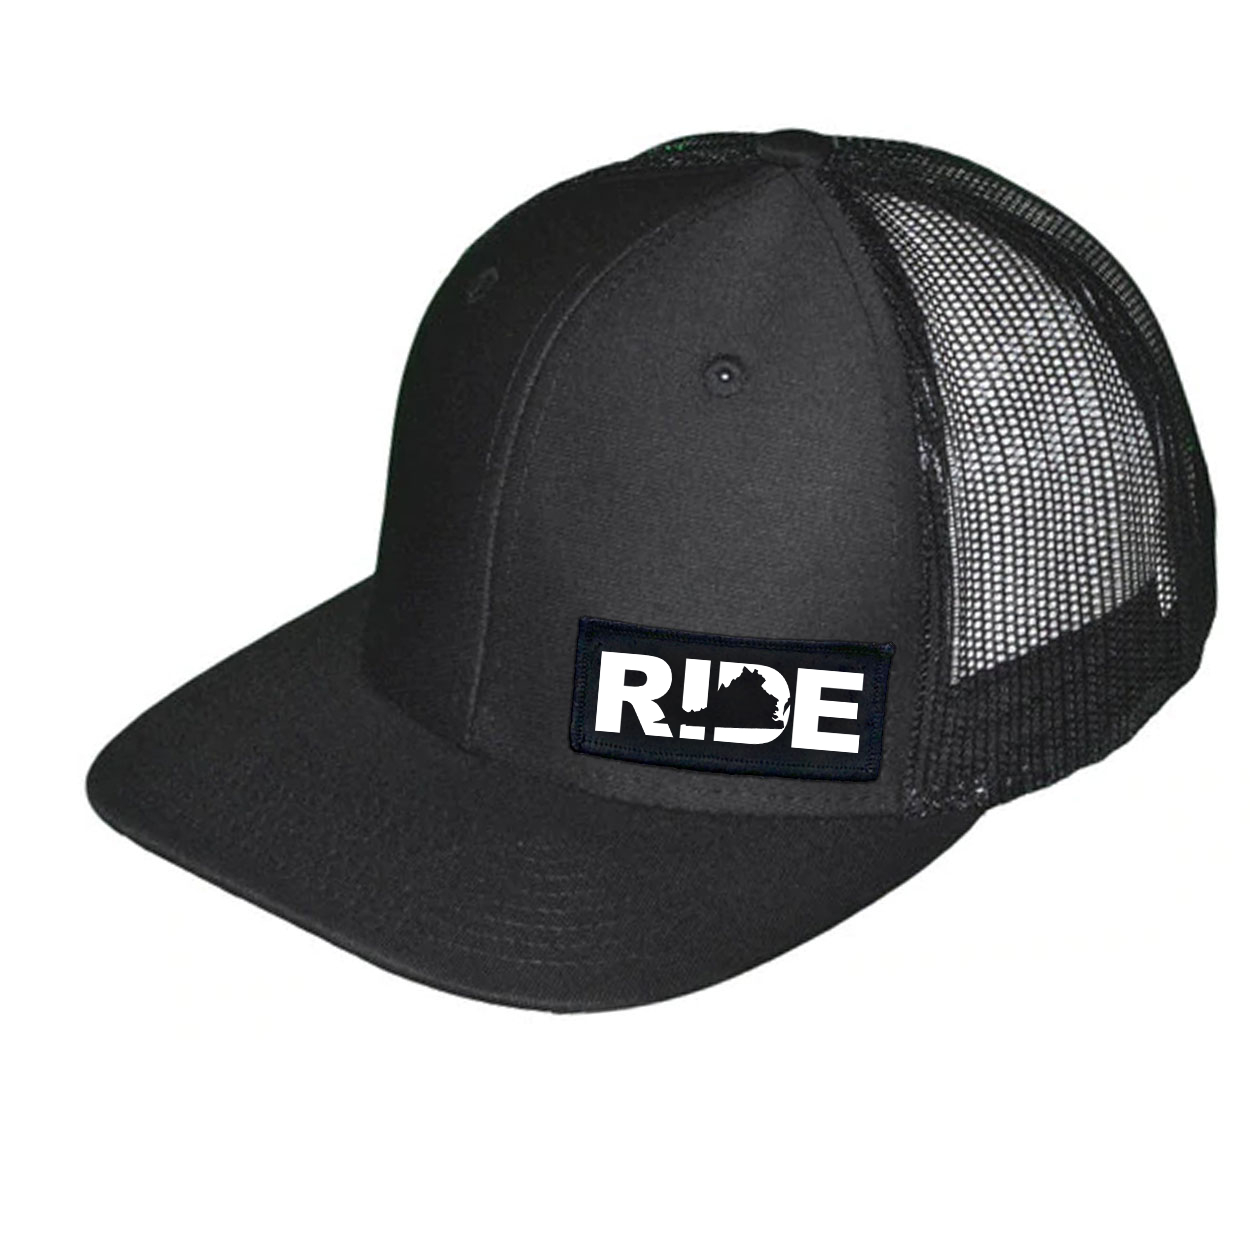 Ride Virginia Night Out Woven Patch Snapback Trucker Hat Black (White Logo)